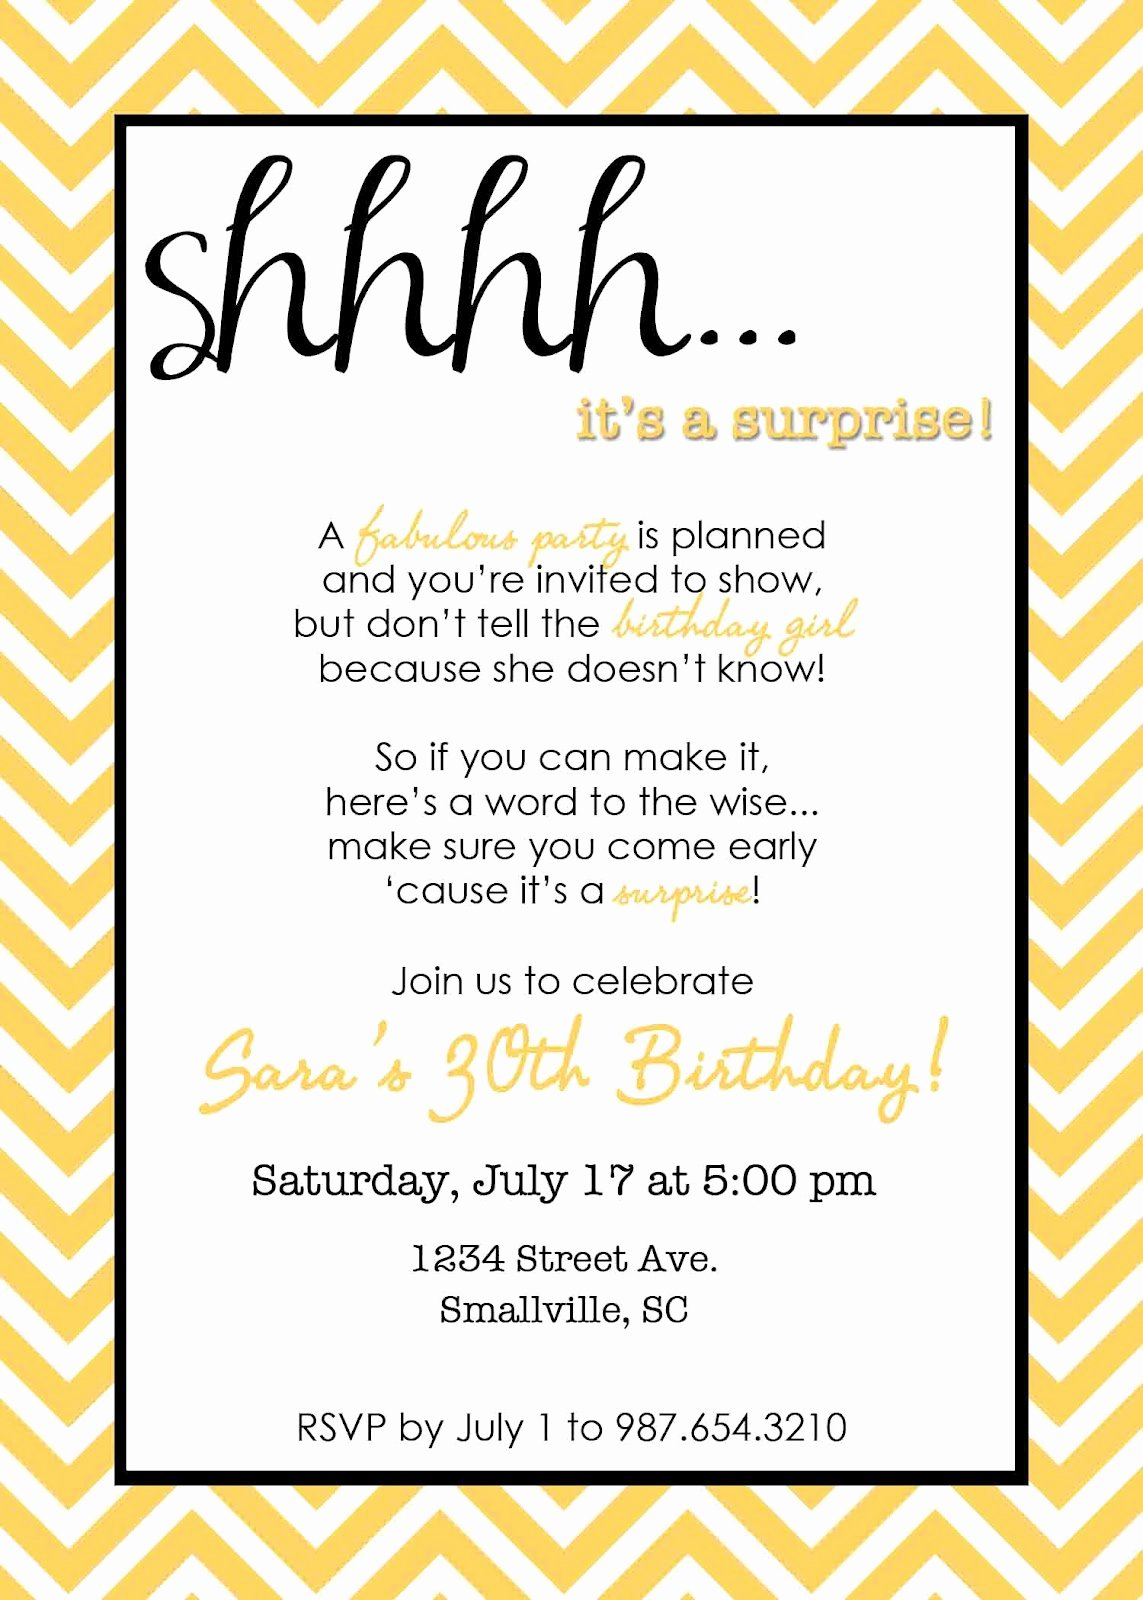 Free Surprise Party Invitations Fresh Wording for Surprise Birthday Party Invitations Free